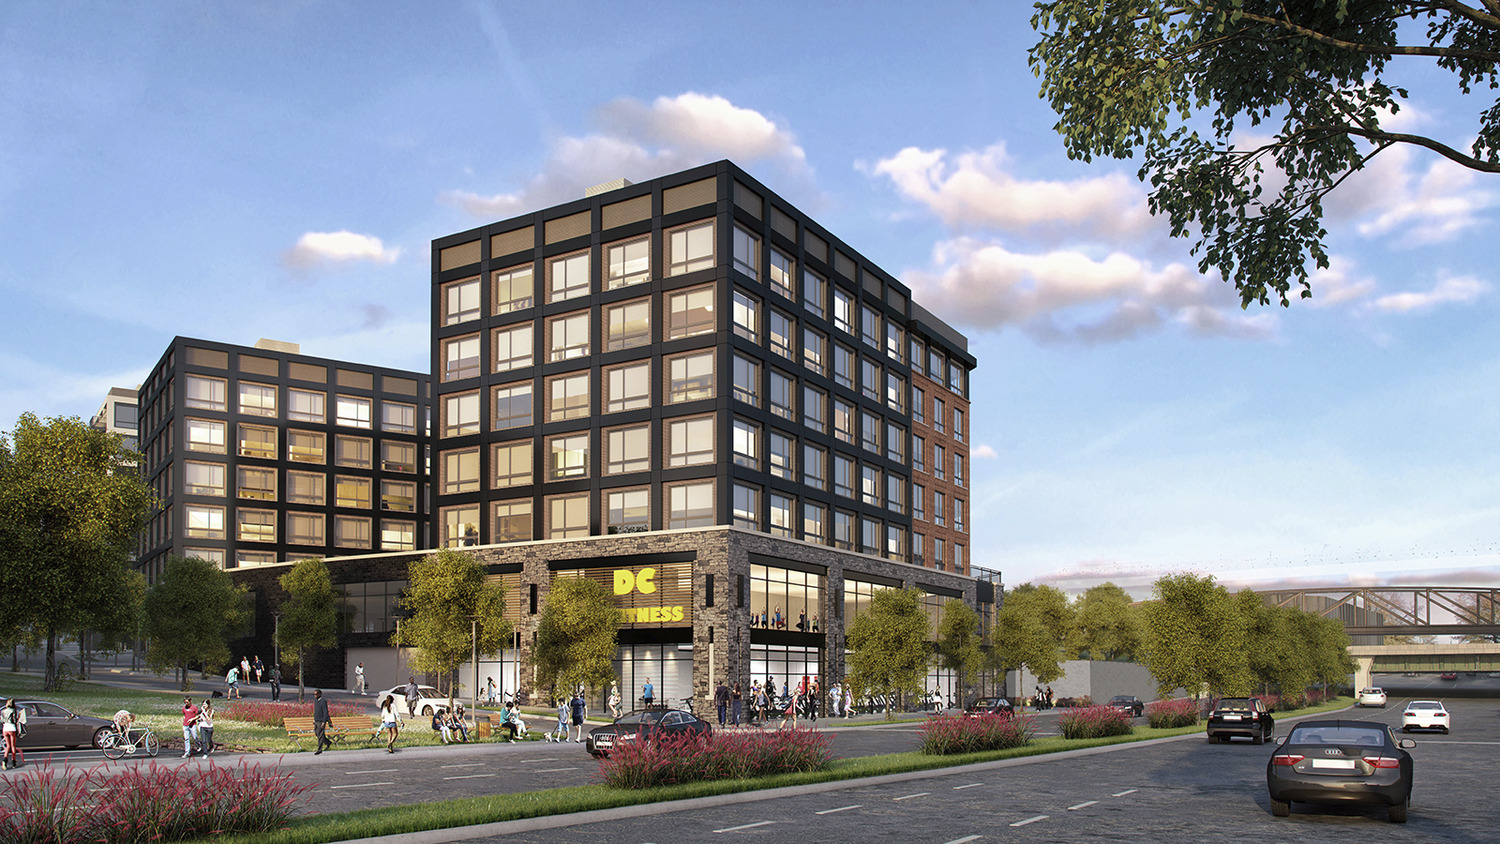 CBG builds Bryant Street, a Urban Mixed-Use Development with 487 Apartments Across Three Buildings in Washington, DC - Image #1